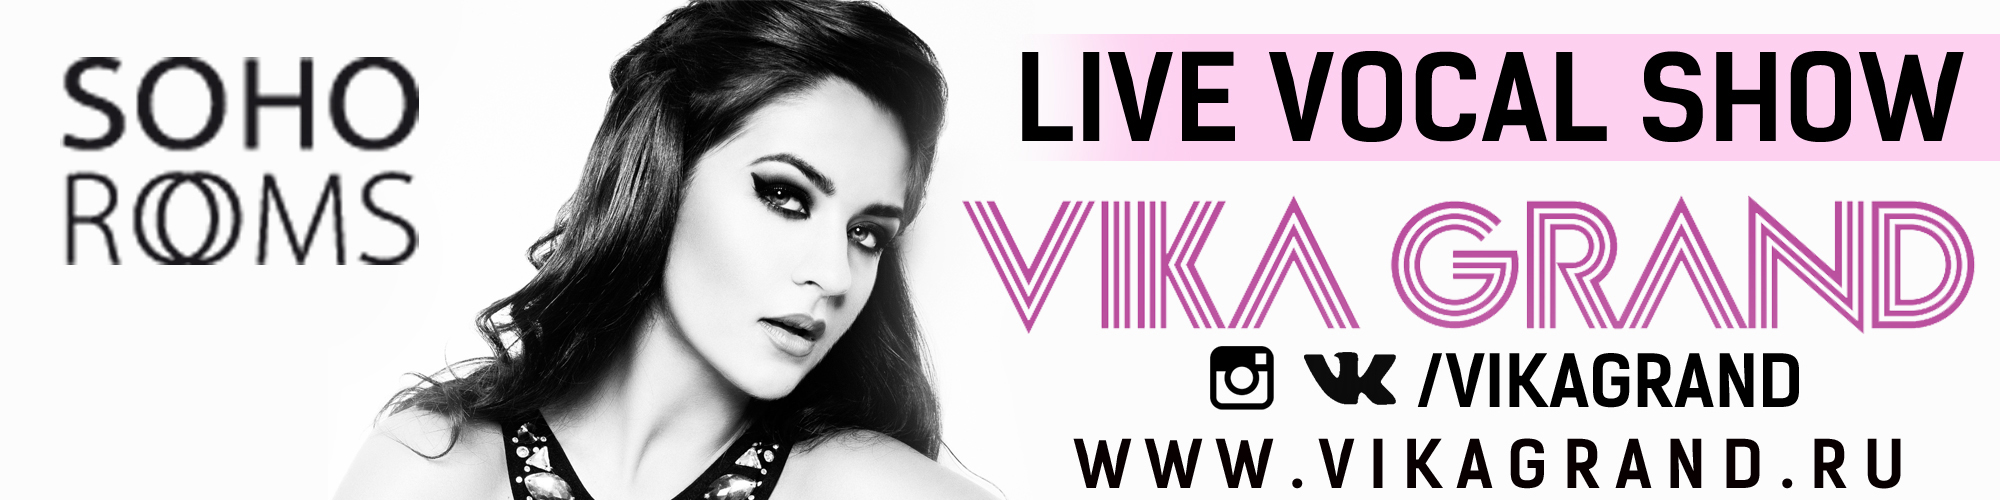 Vika grand live house vocal show for Vocal house music charts